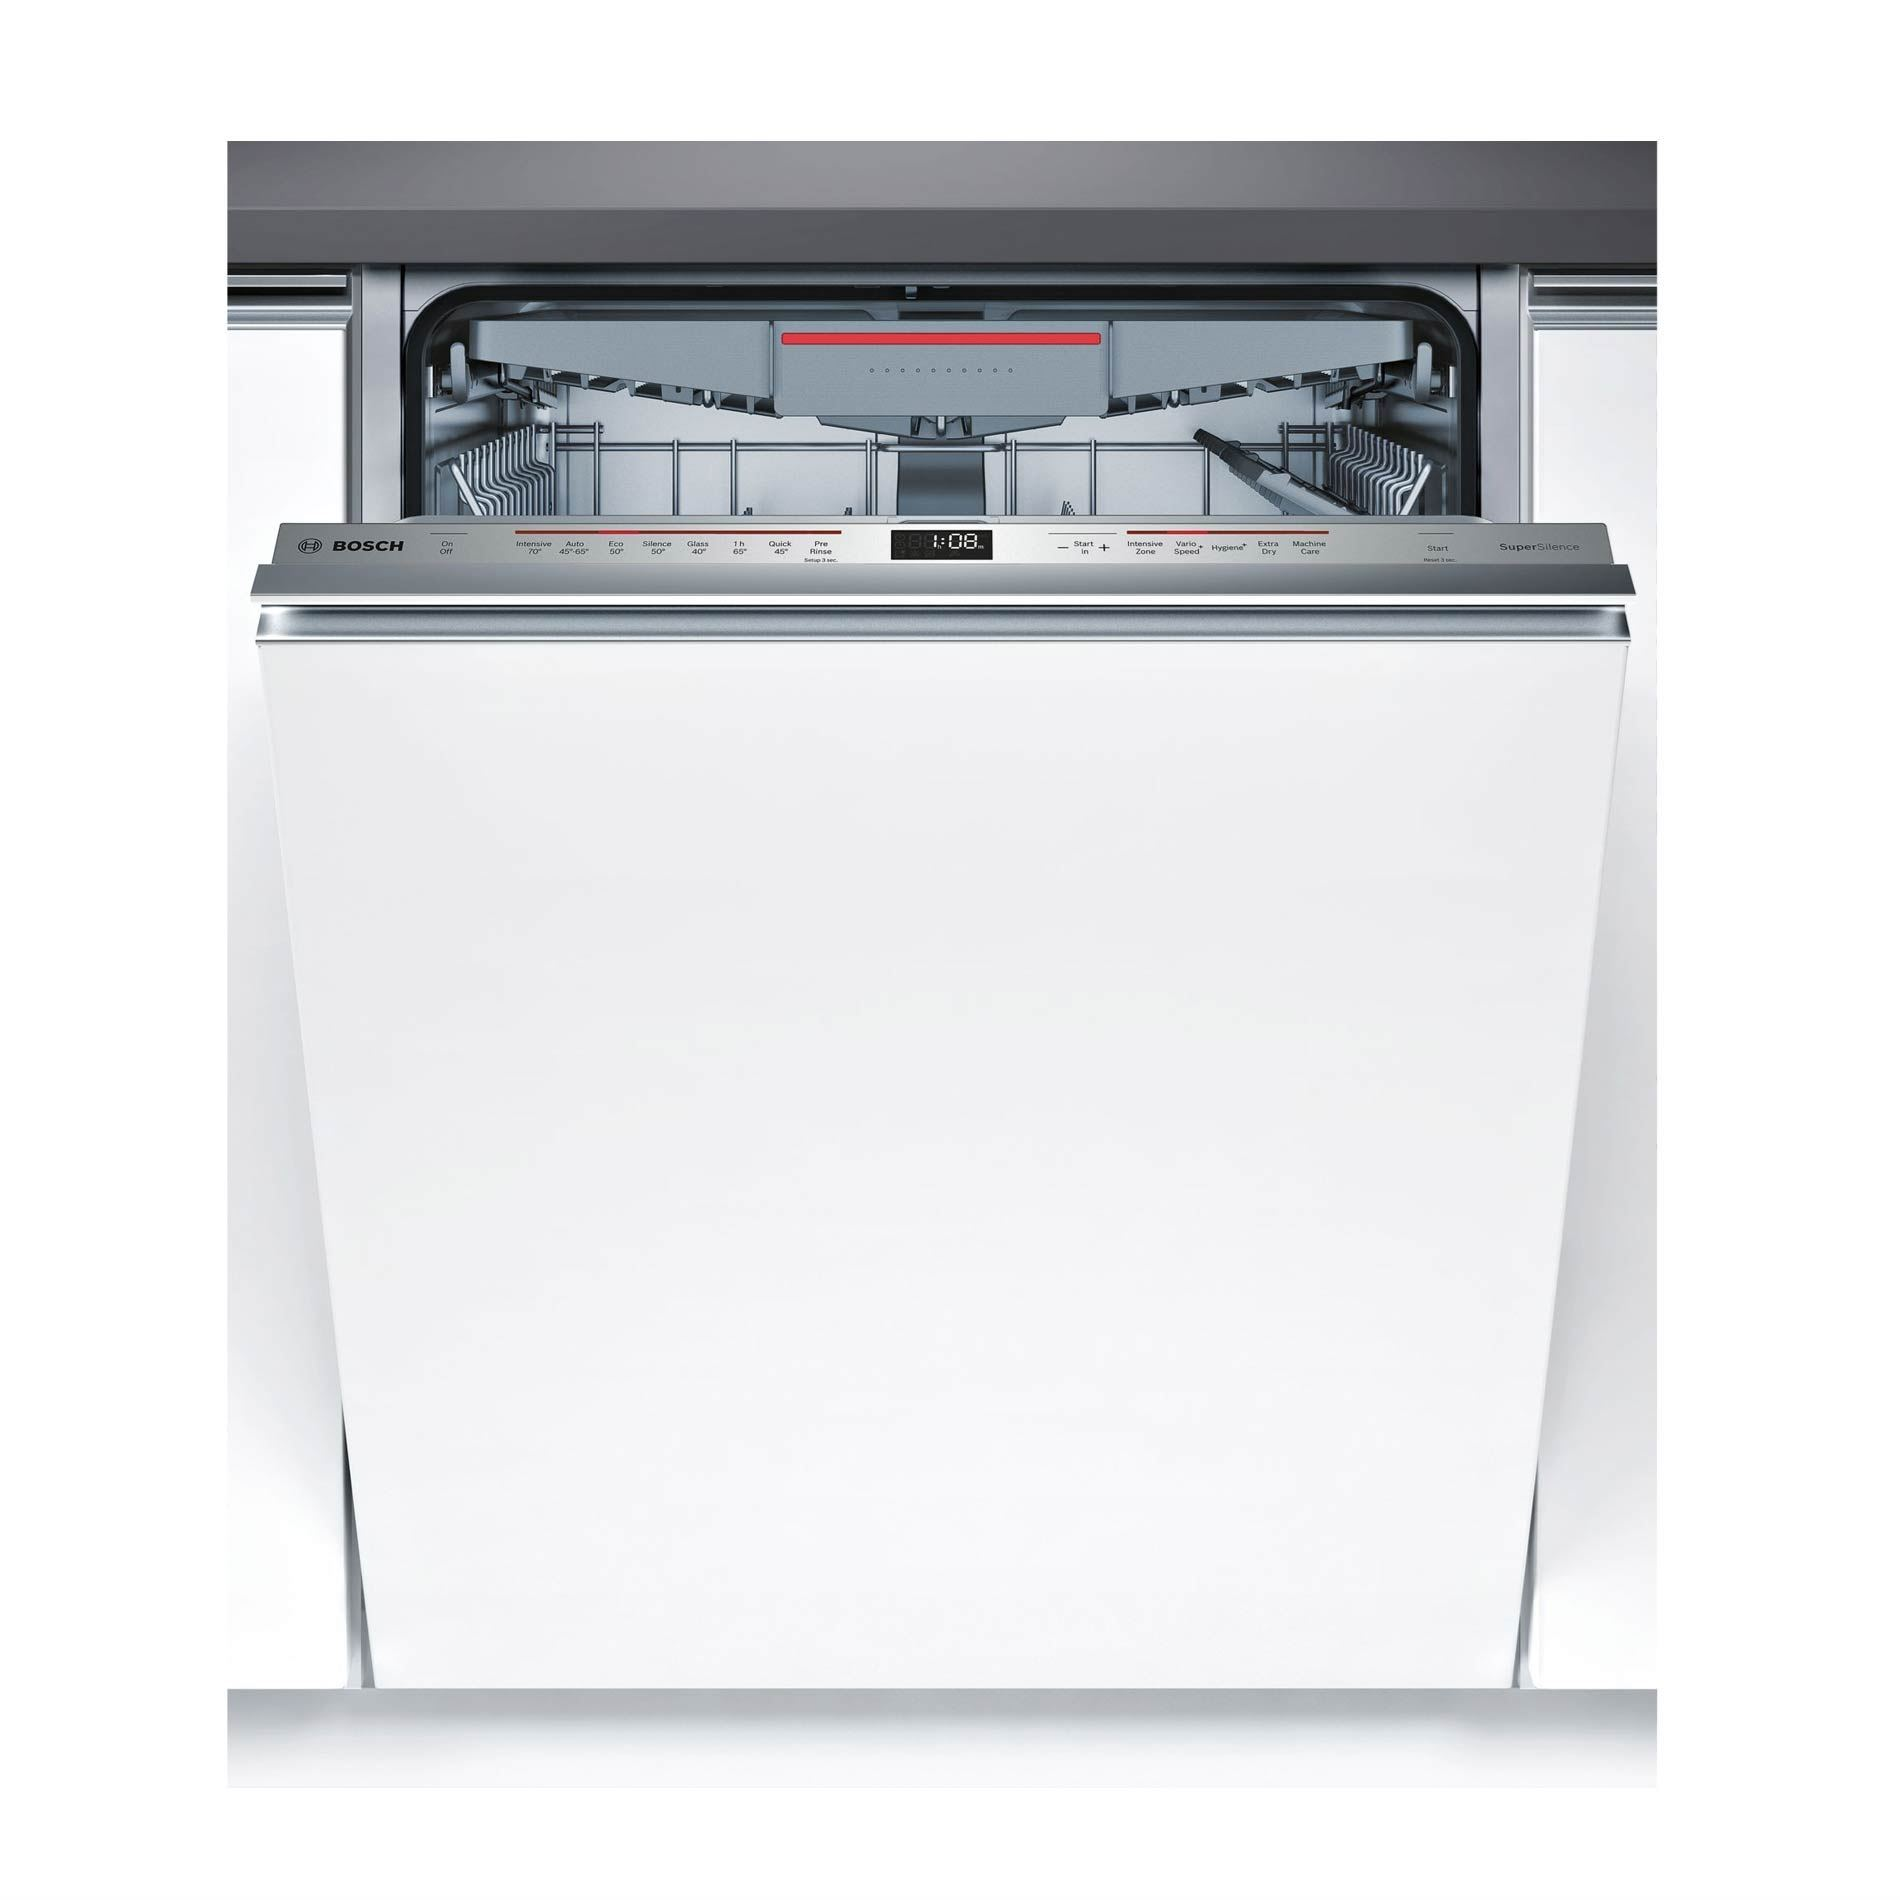 Picture of SMV68MD02G Silver Fully Integrated Dishwasher